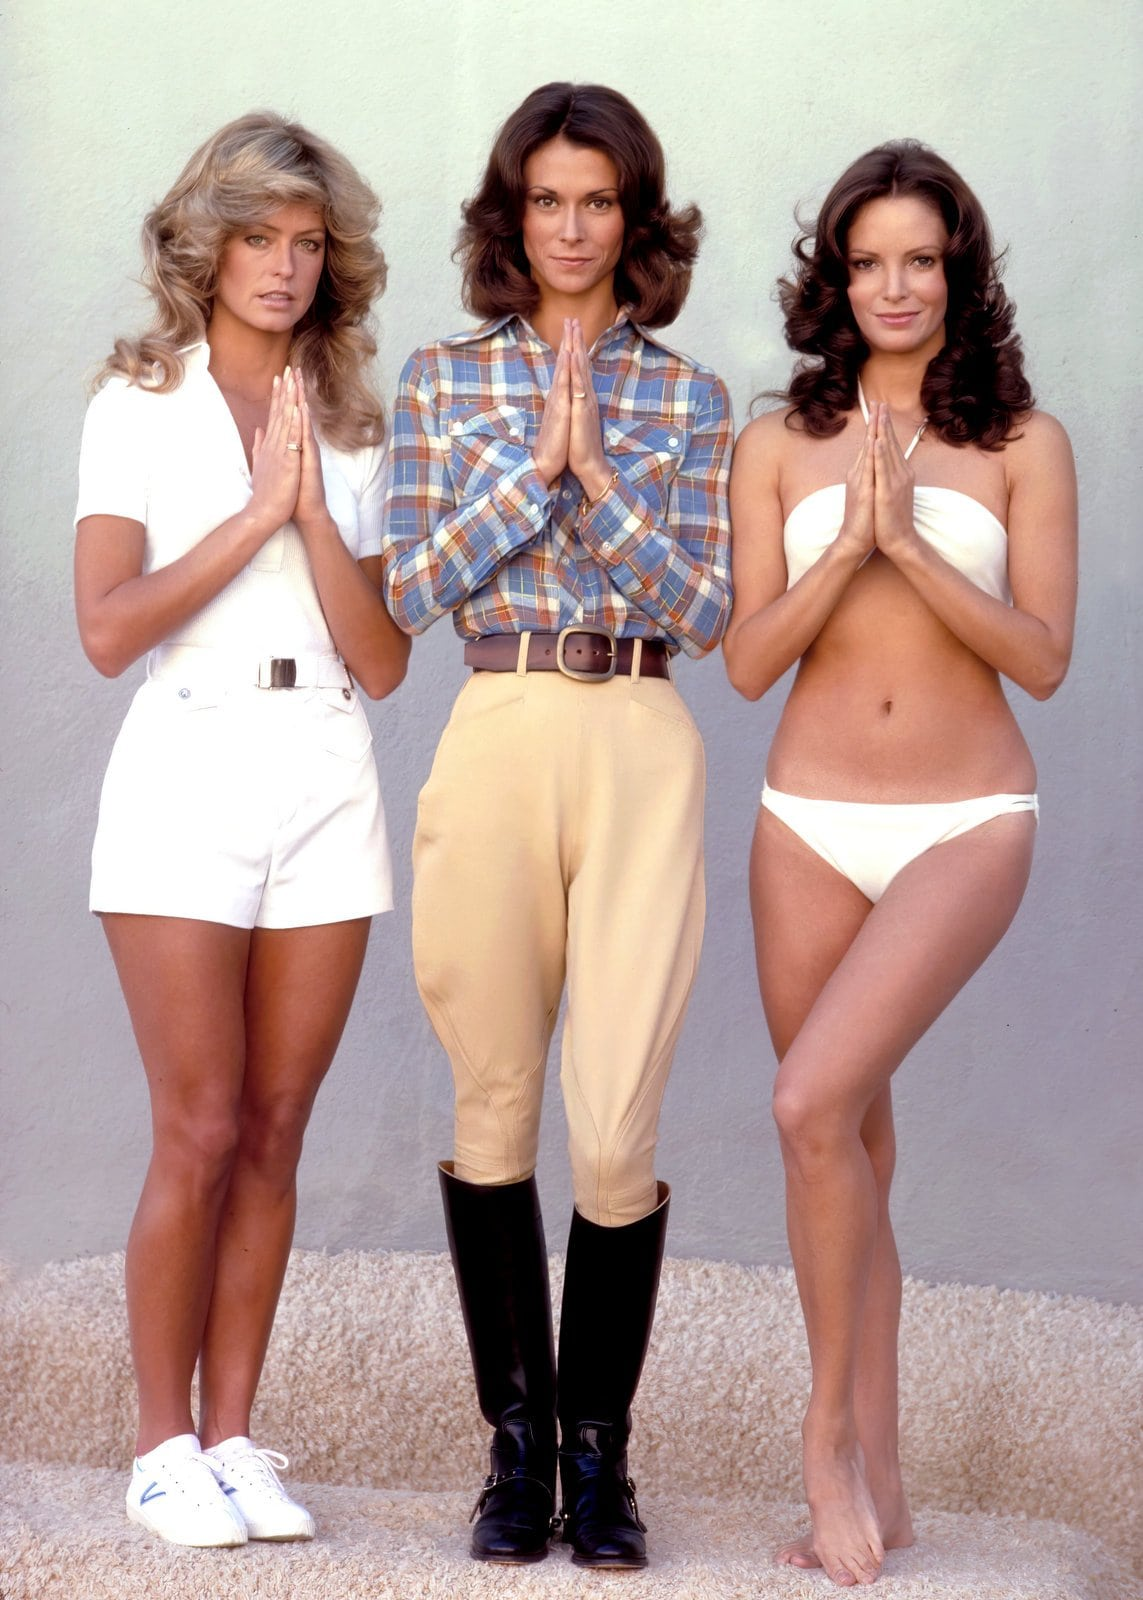 Praying Charlie's Angels - Vintage seventies TV show leads